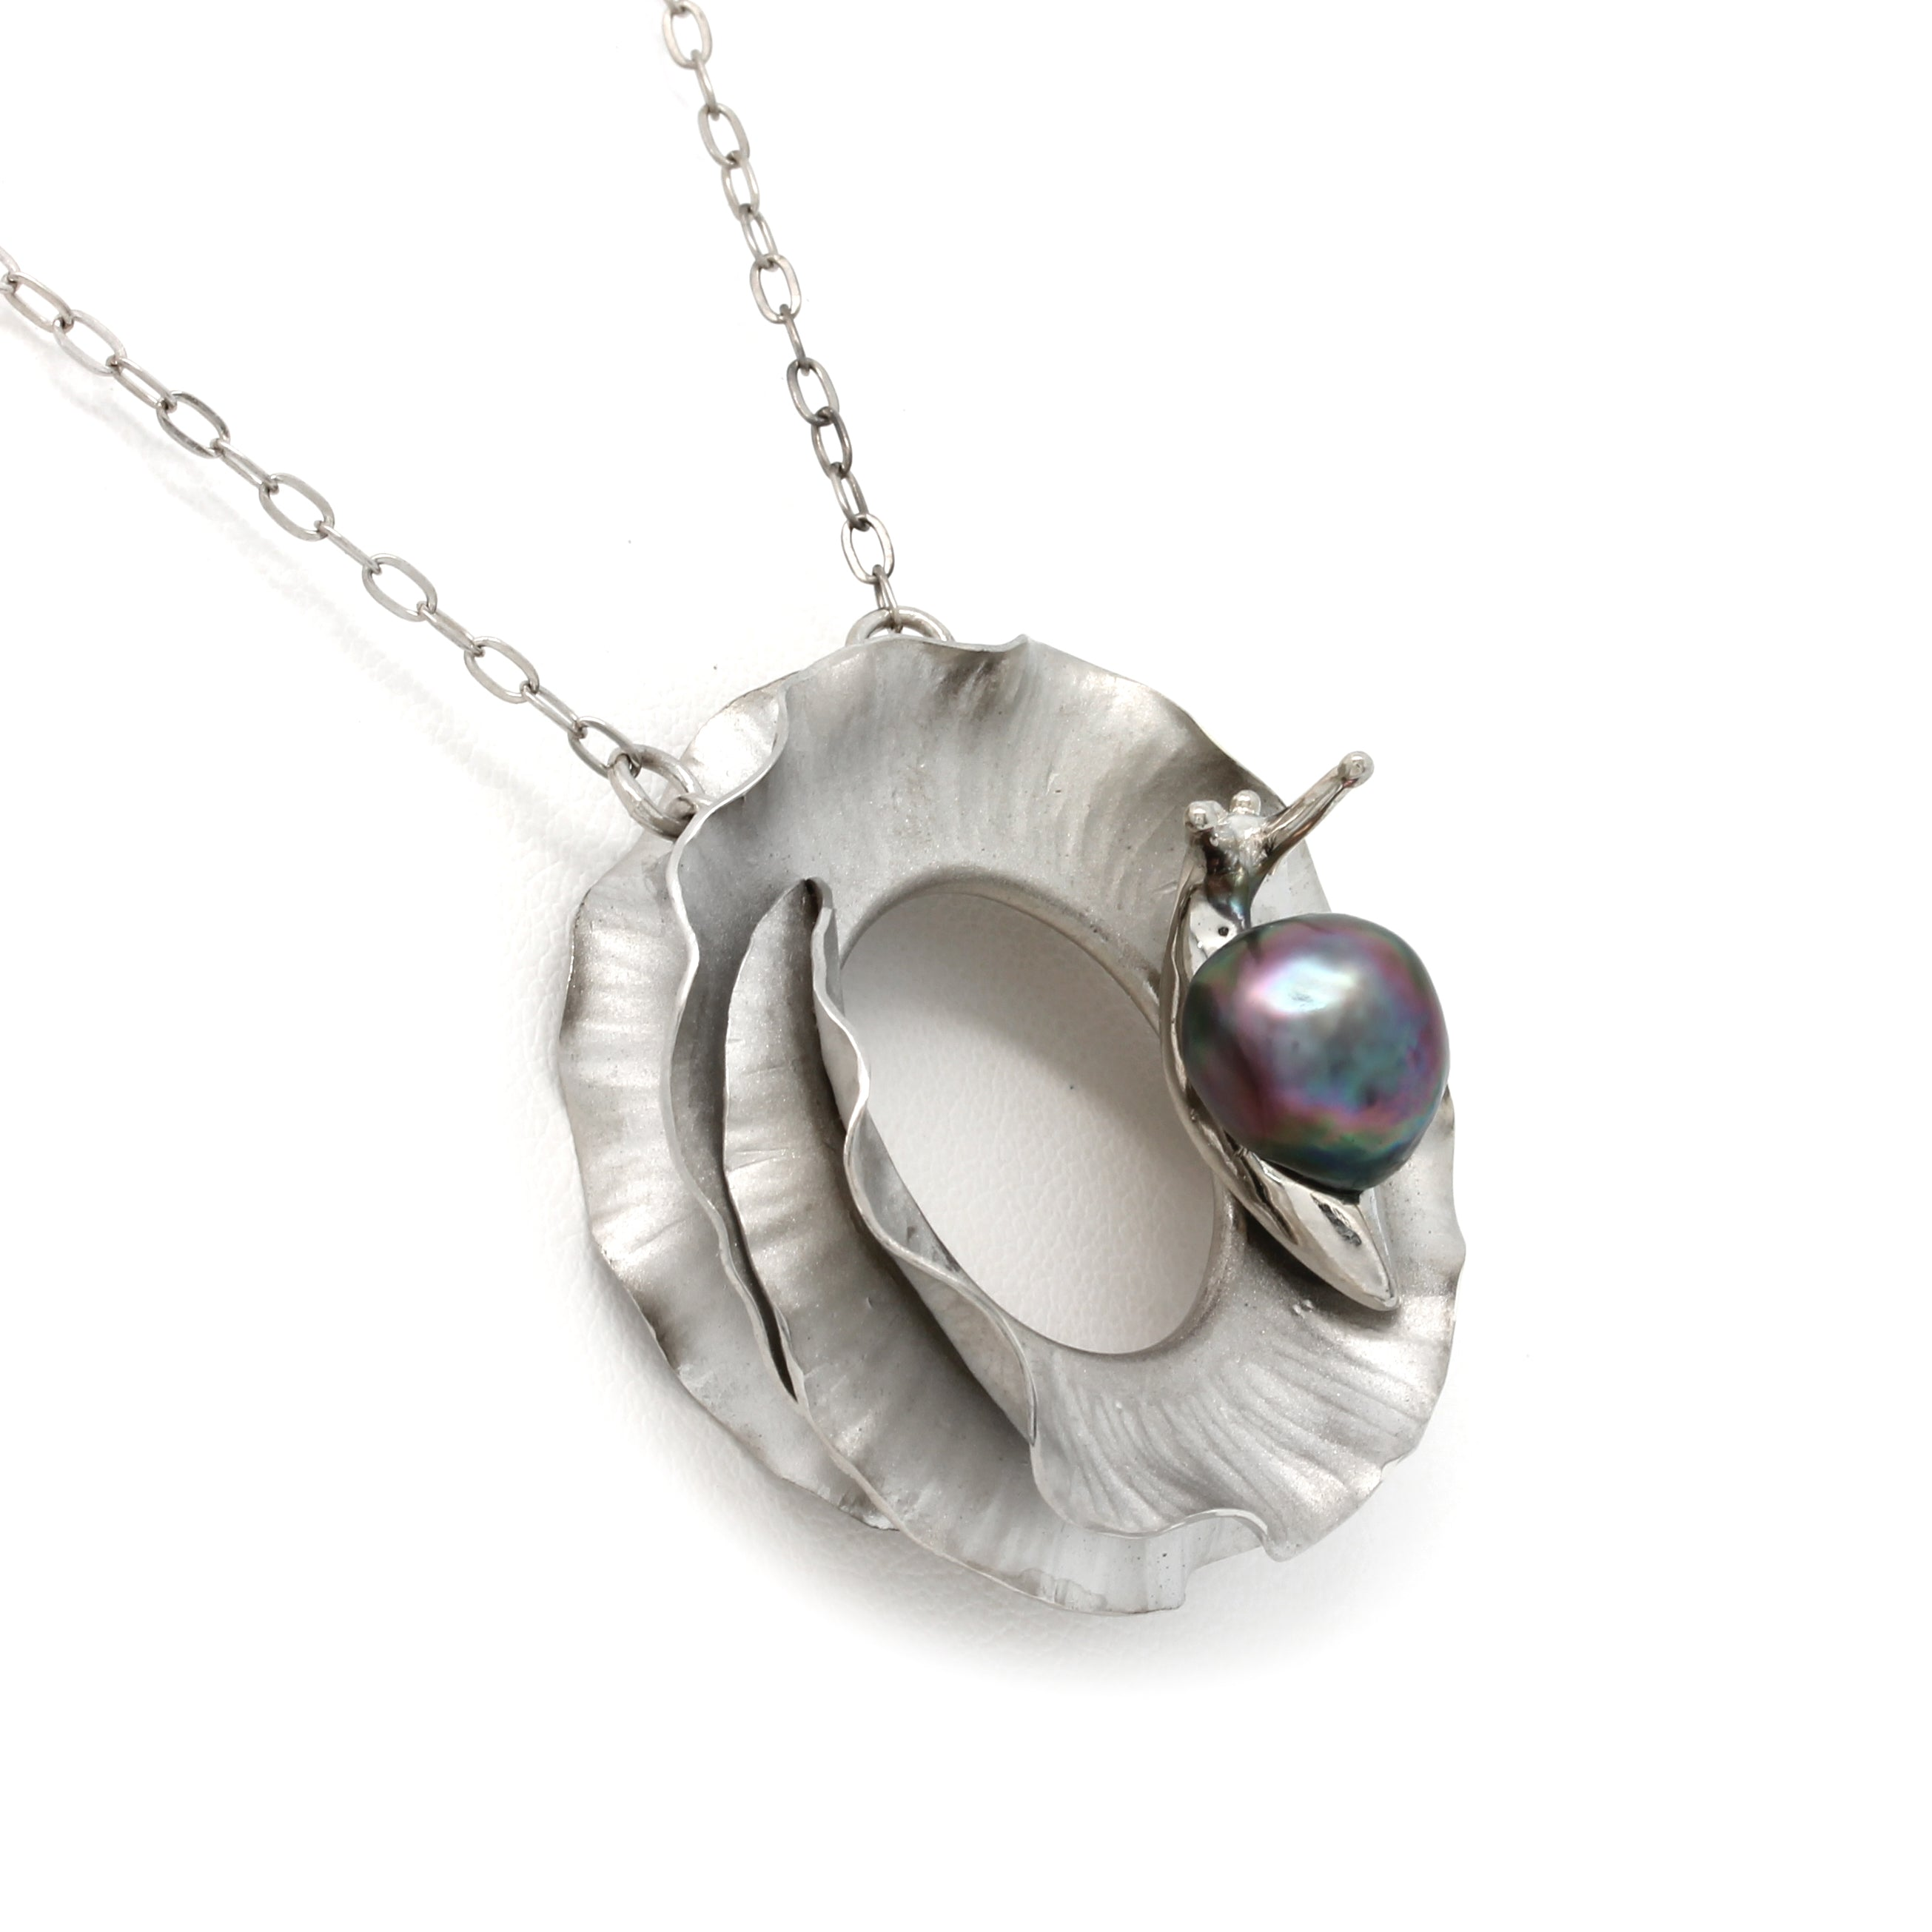 """Travesía"" Silver Pendant and chain with Cortez Pearl by Héctor Salgado"